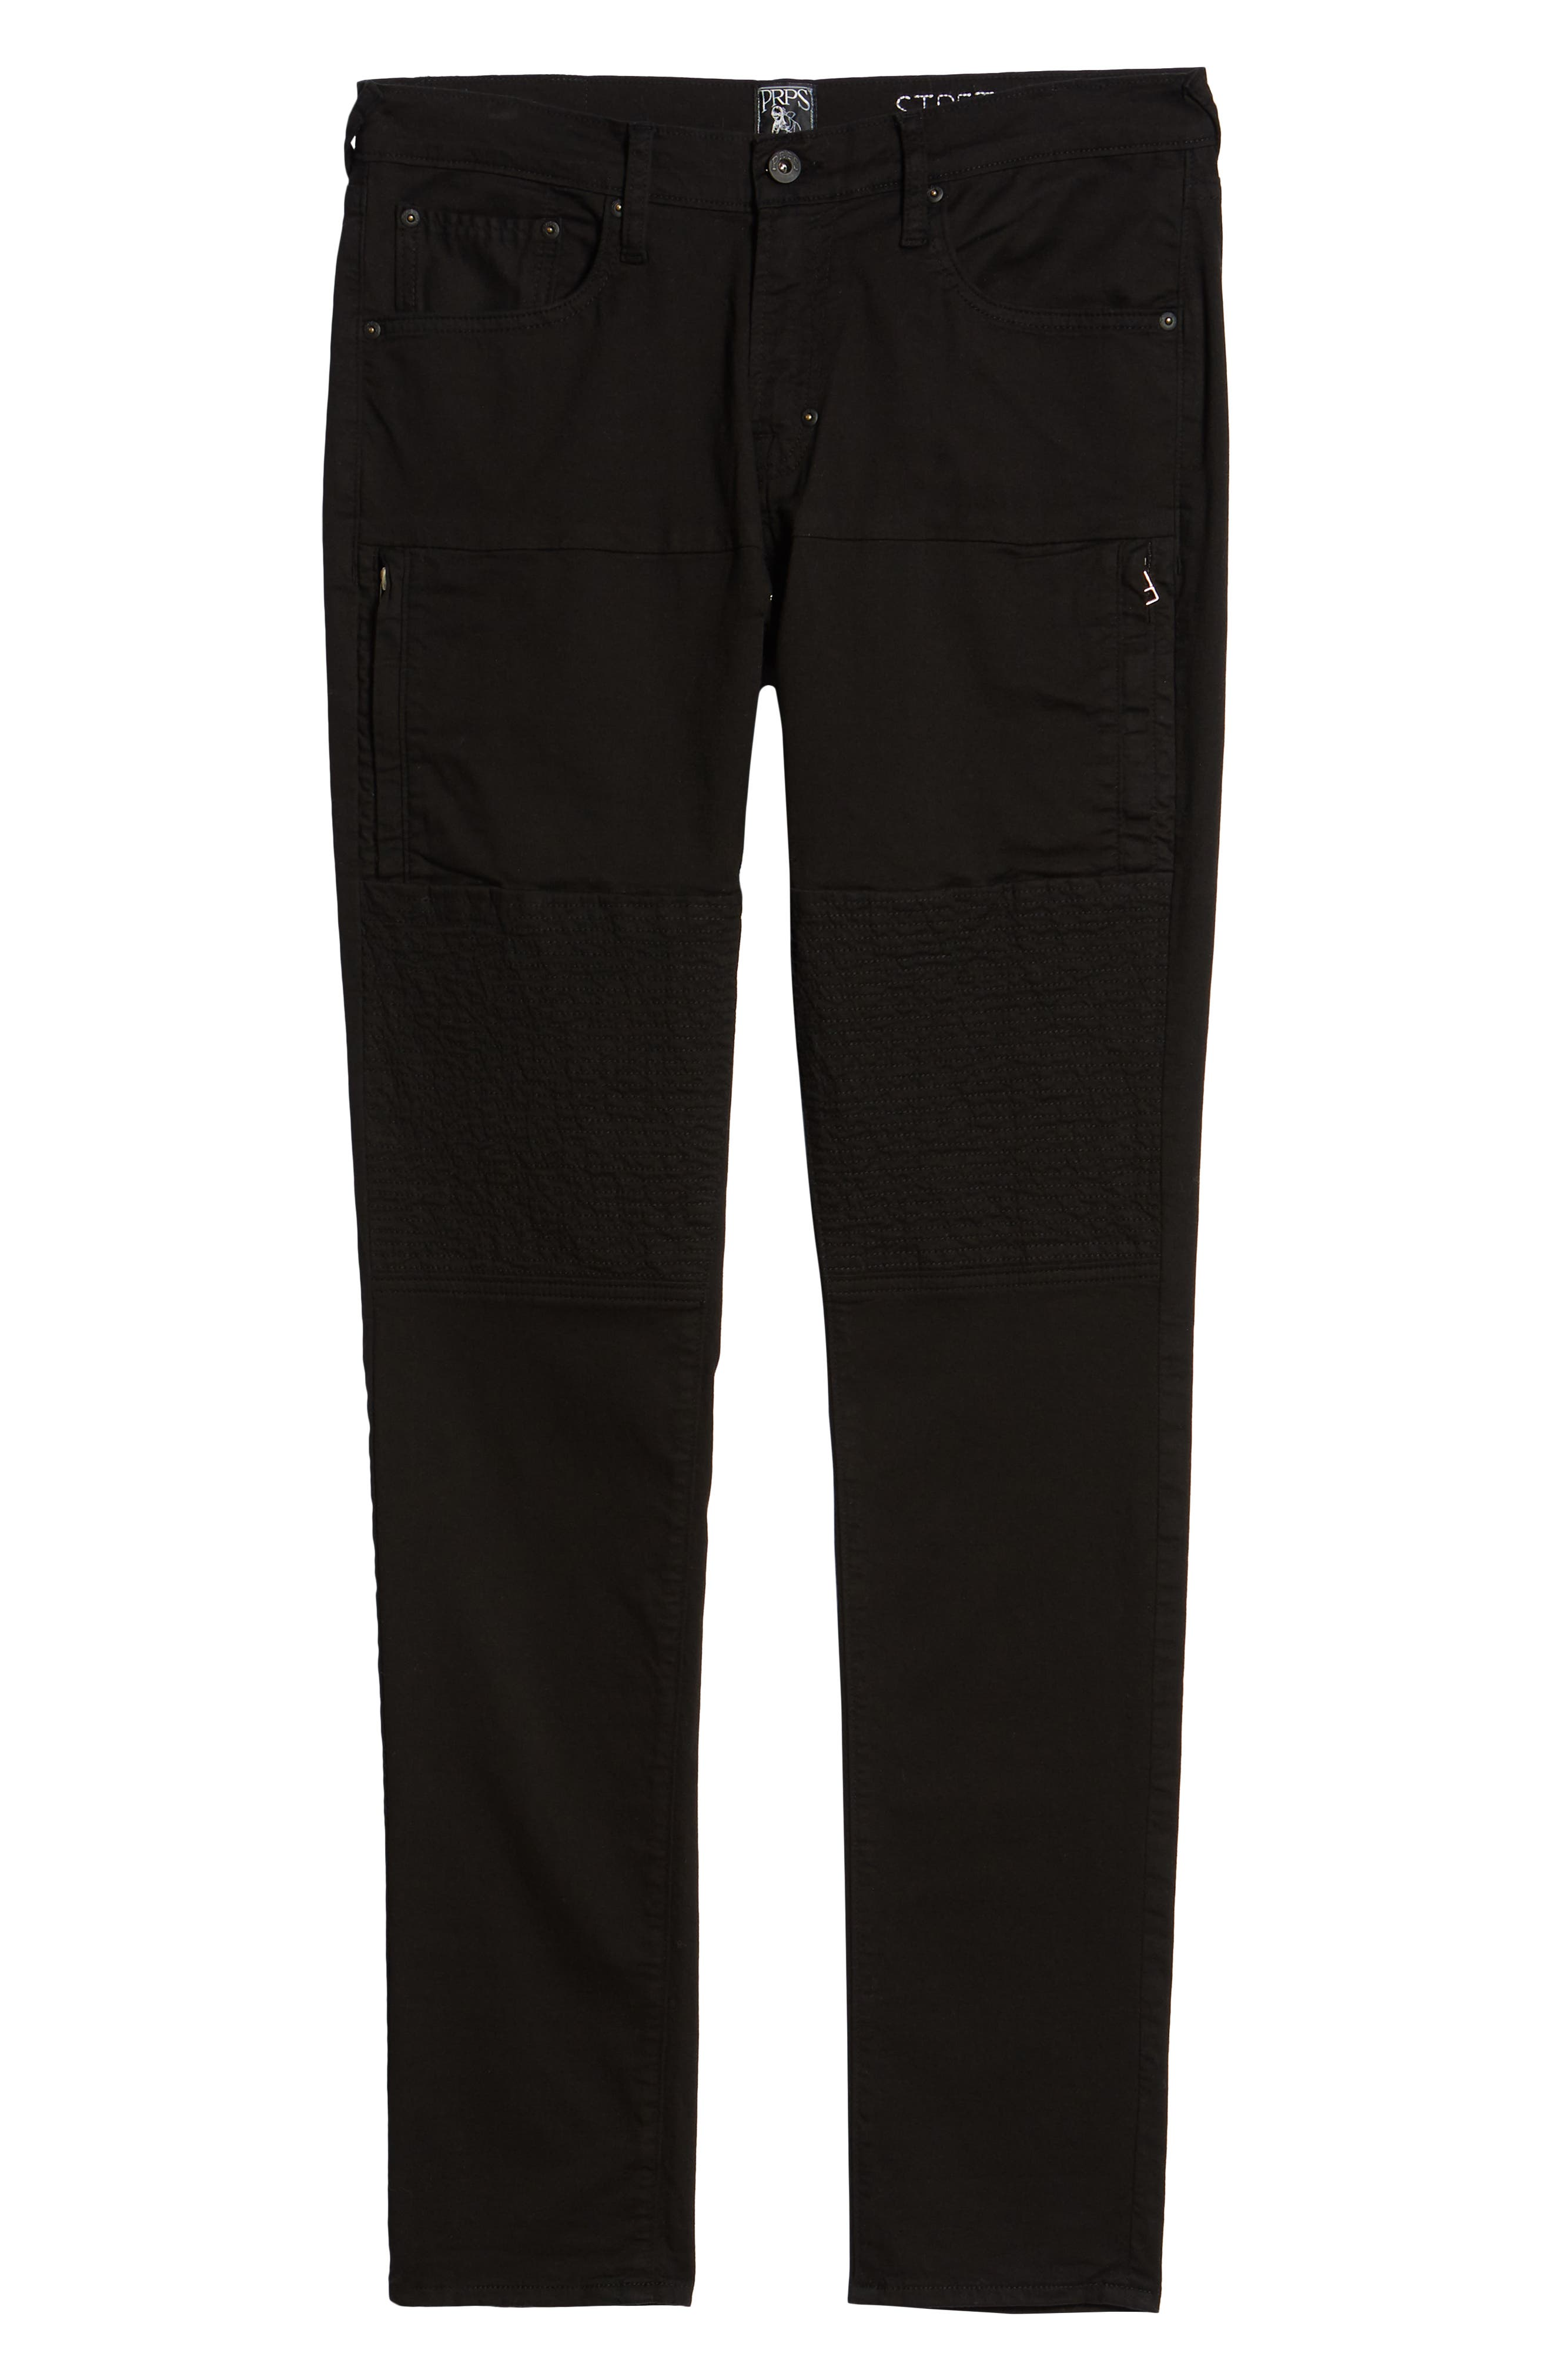 Le Sabre Slim Fit Jeans,                             Alternate thumbnail 6, color,                             Black